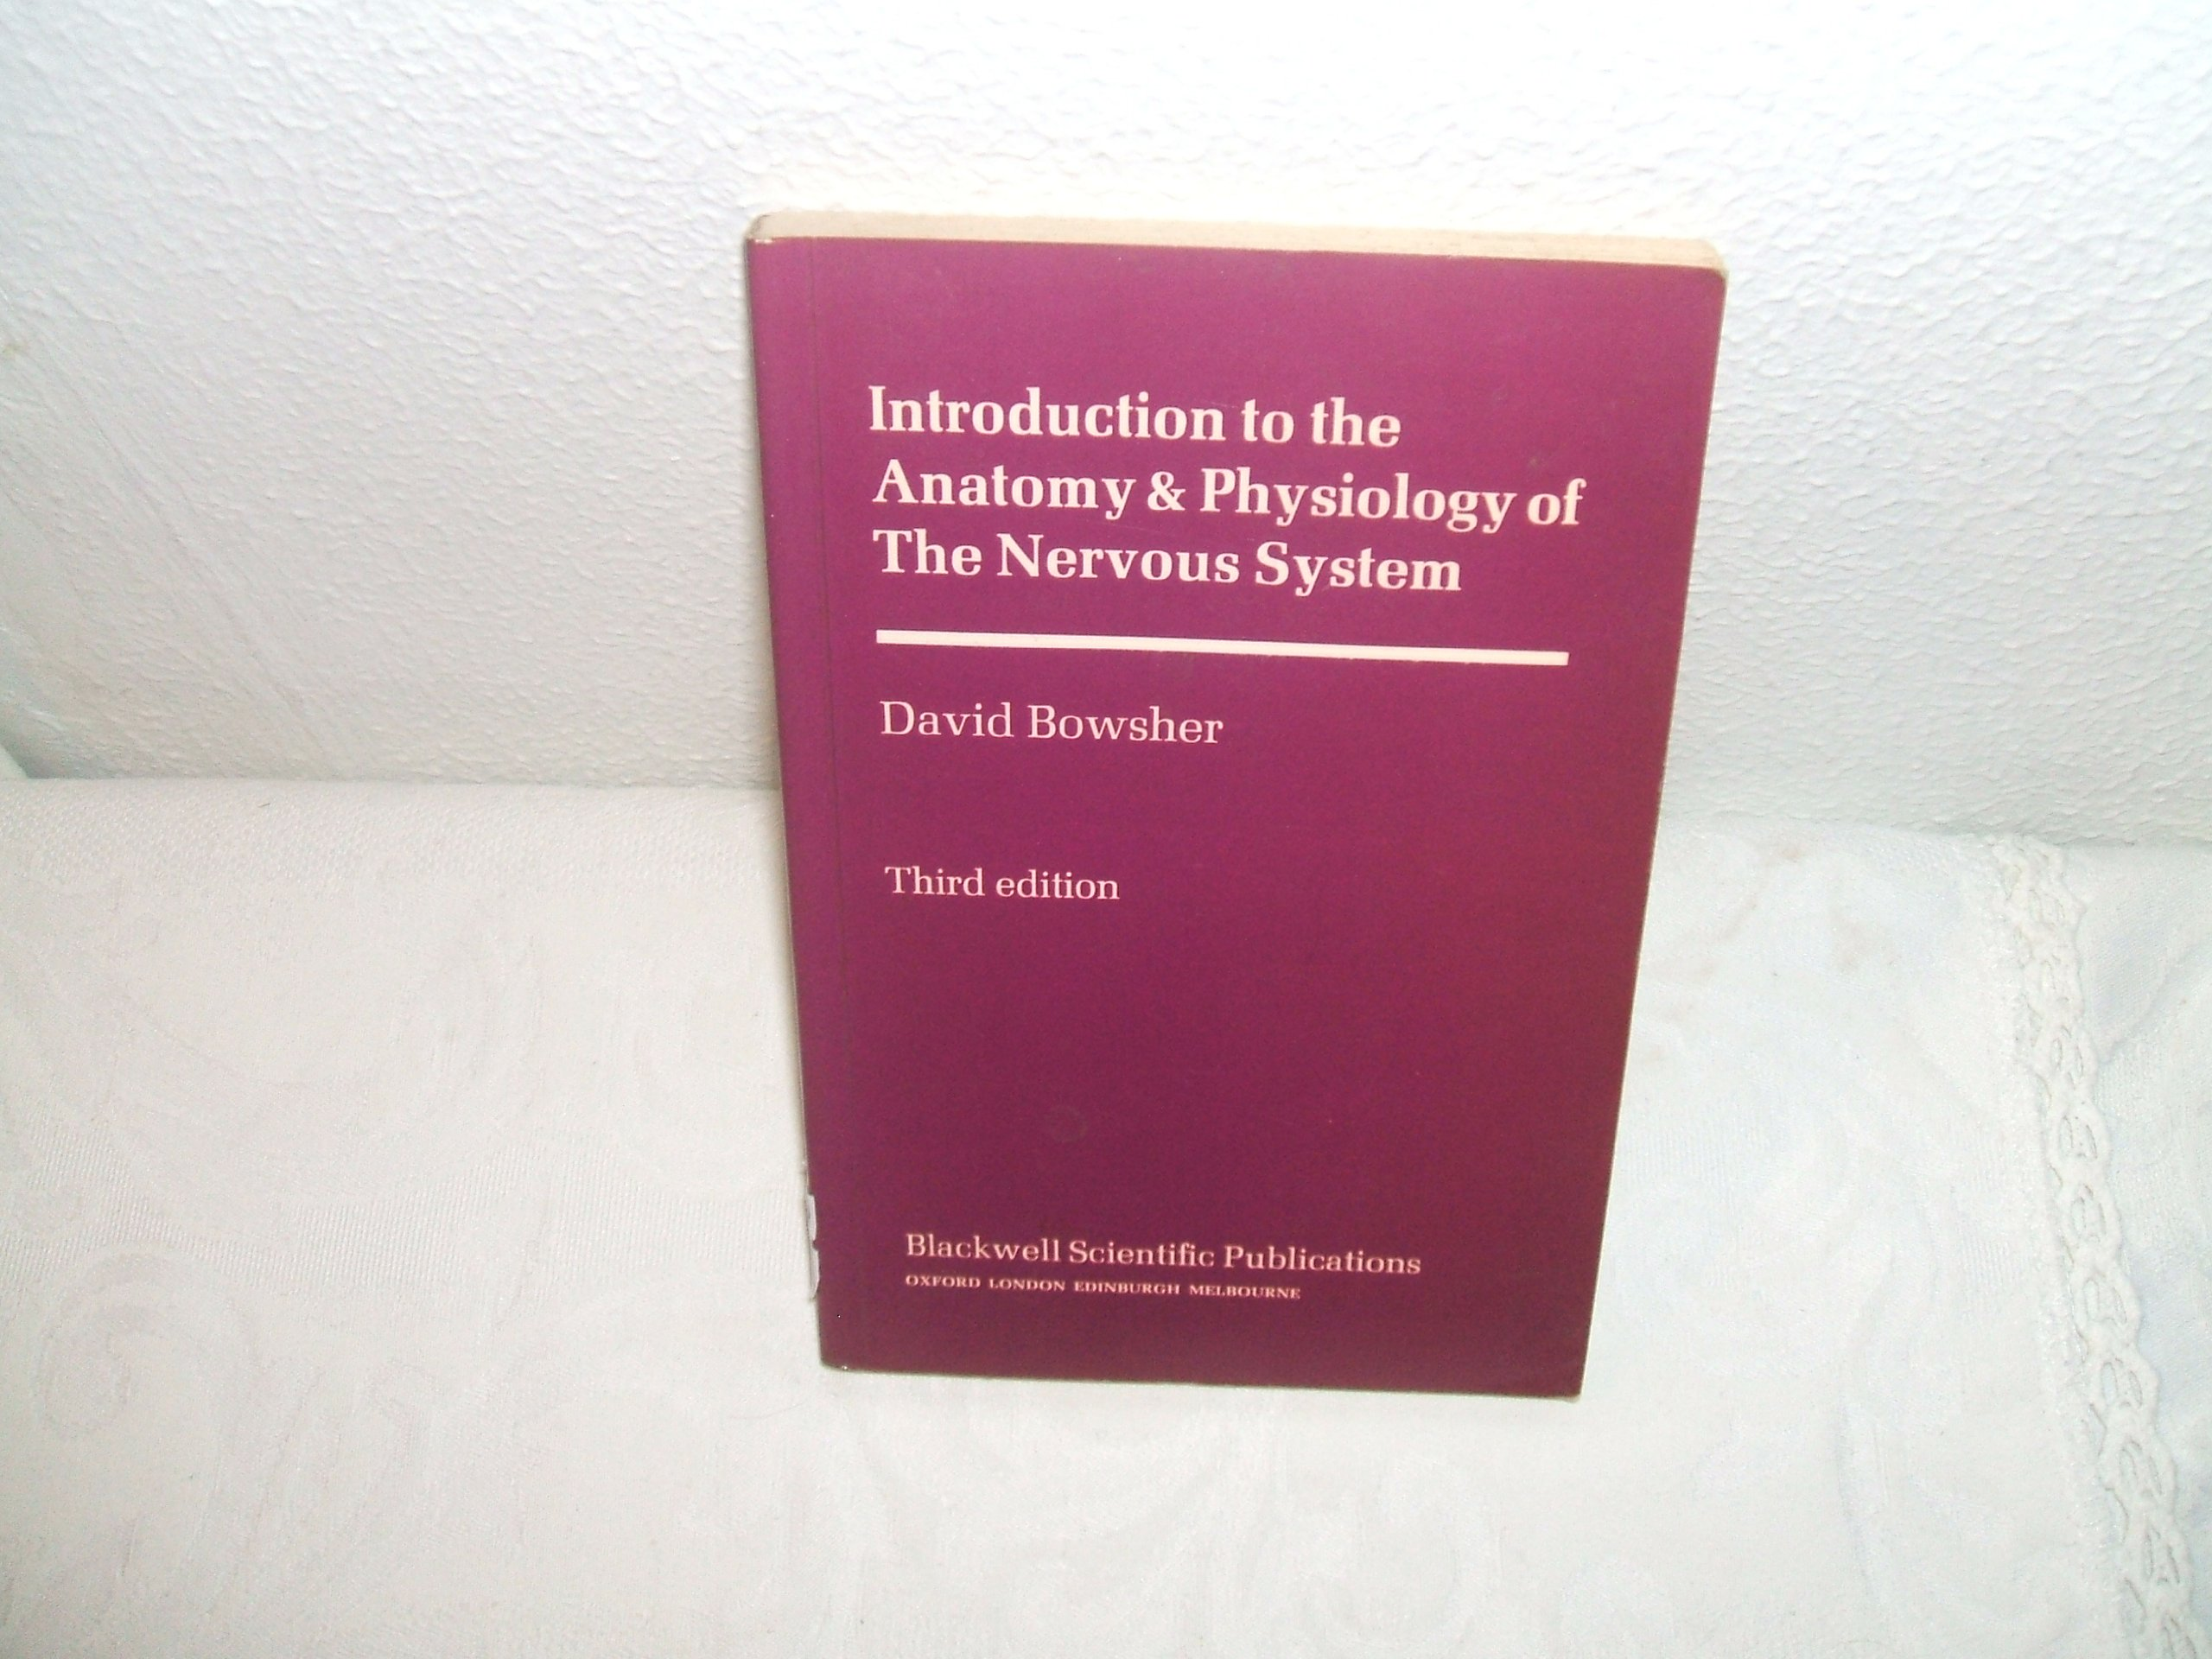 Introduction to the Anatomy and Physiology of the Nervous System ...